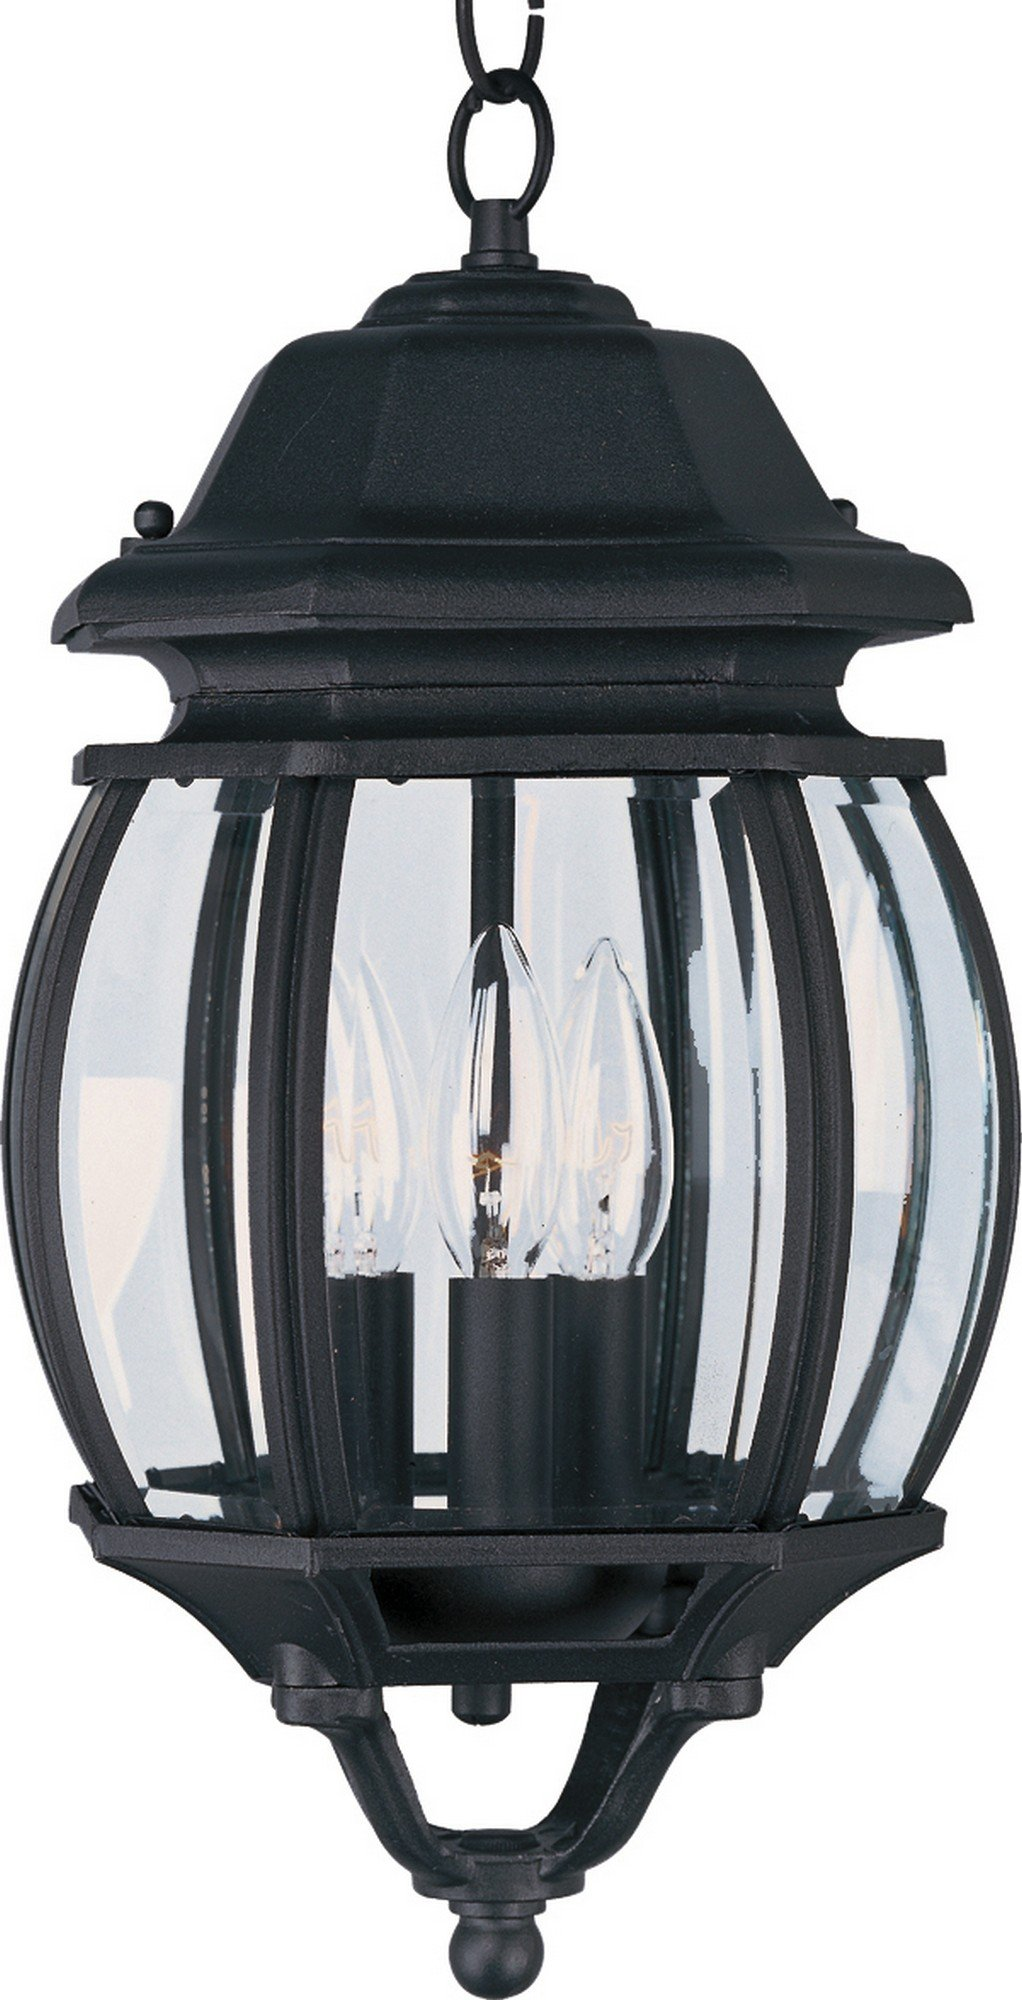 Maxim 1036BK Crown Hill 3-Light Outdoor Hanging Lantern, Black Finish, Clear Glass, CA Incandescent Incandescent Bulb , 40W Max., Dry Safety Rating, Standard Dimmable, Fabric Shade Material, Rated Lumens